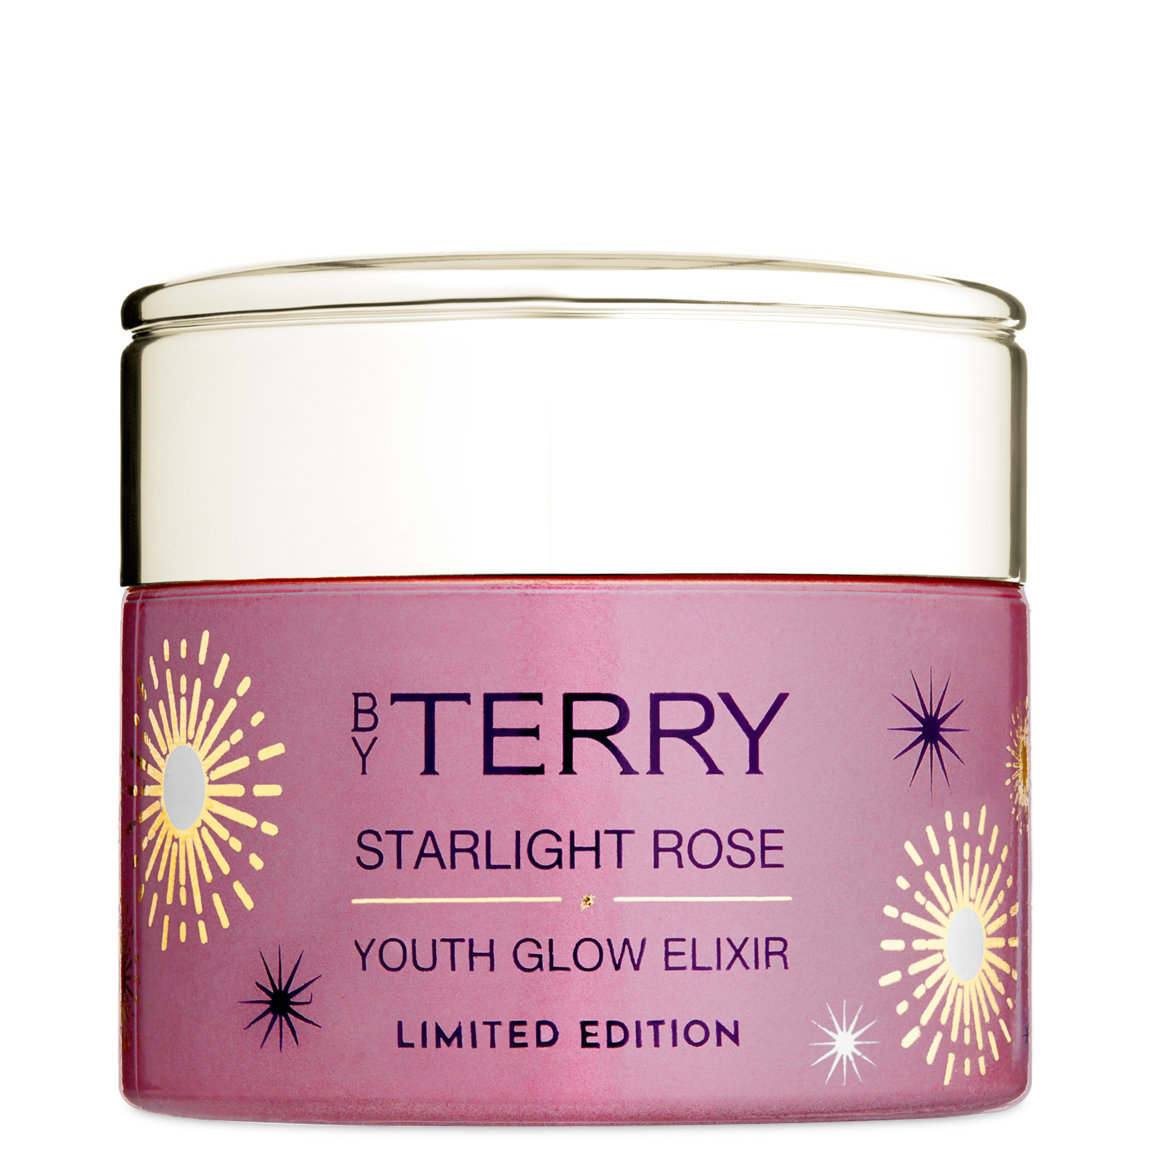 BY TERRY Starlight Rose Youth Glow Elixir product swatch.